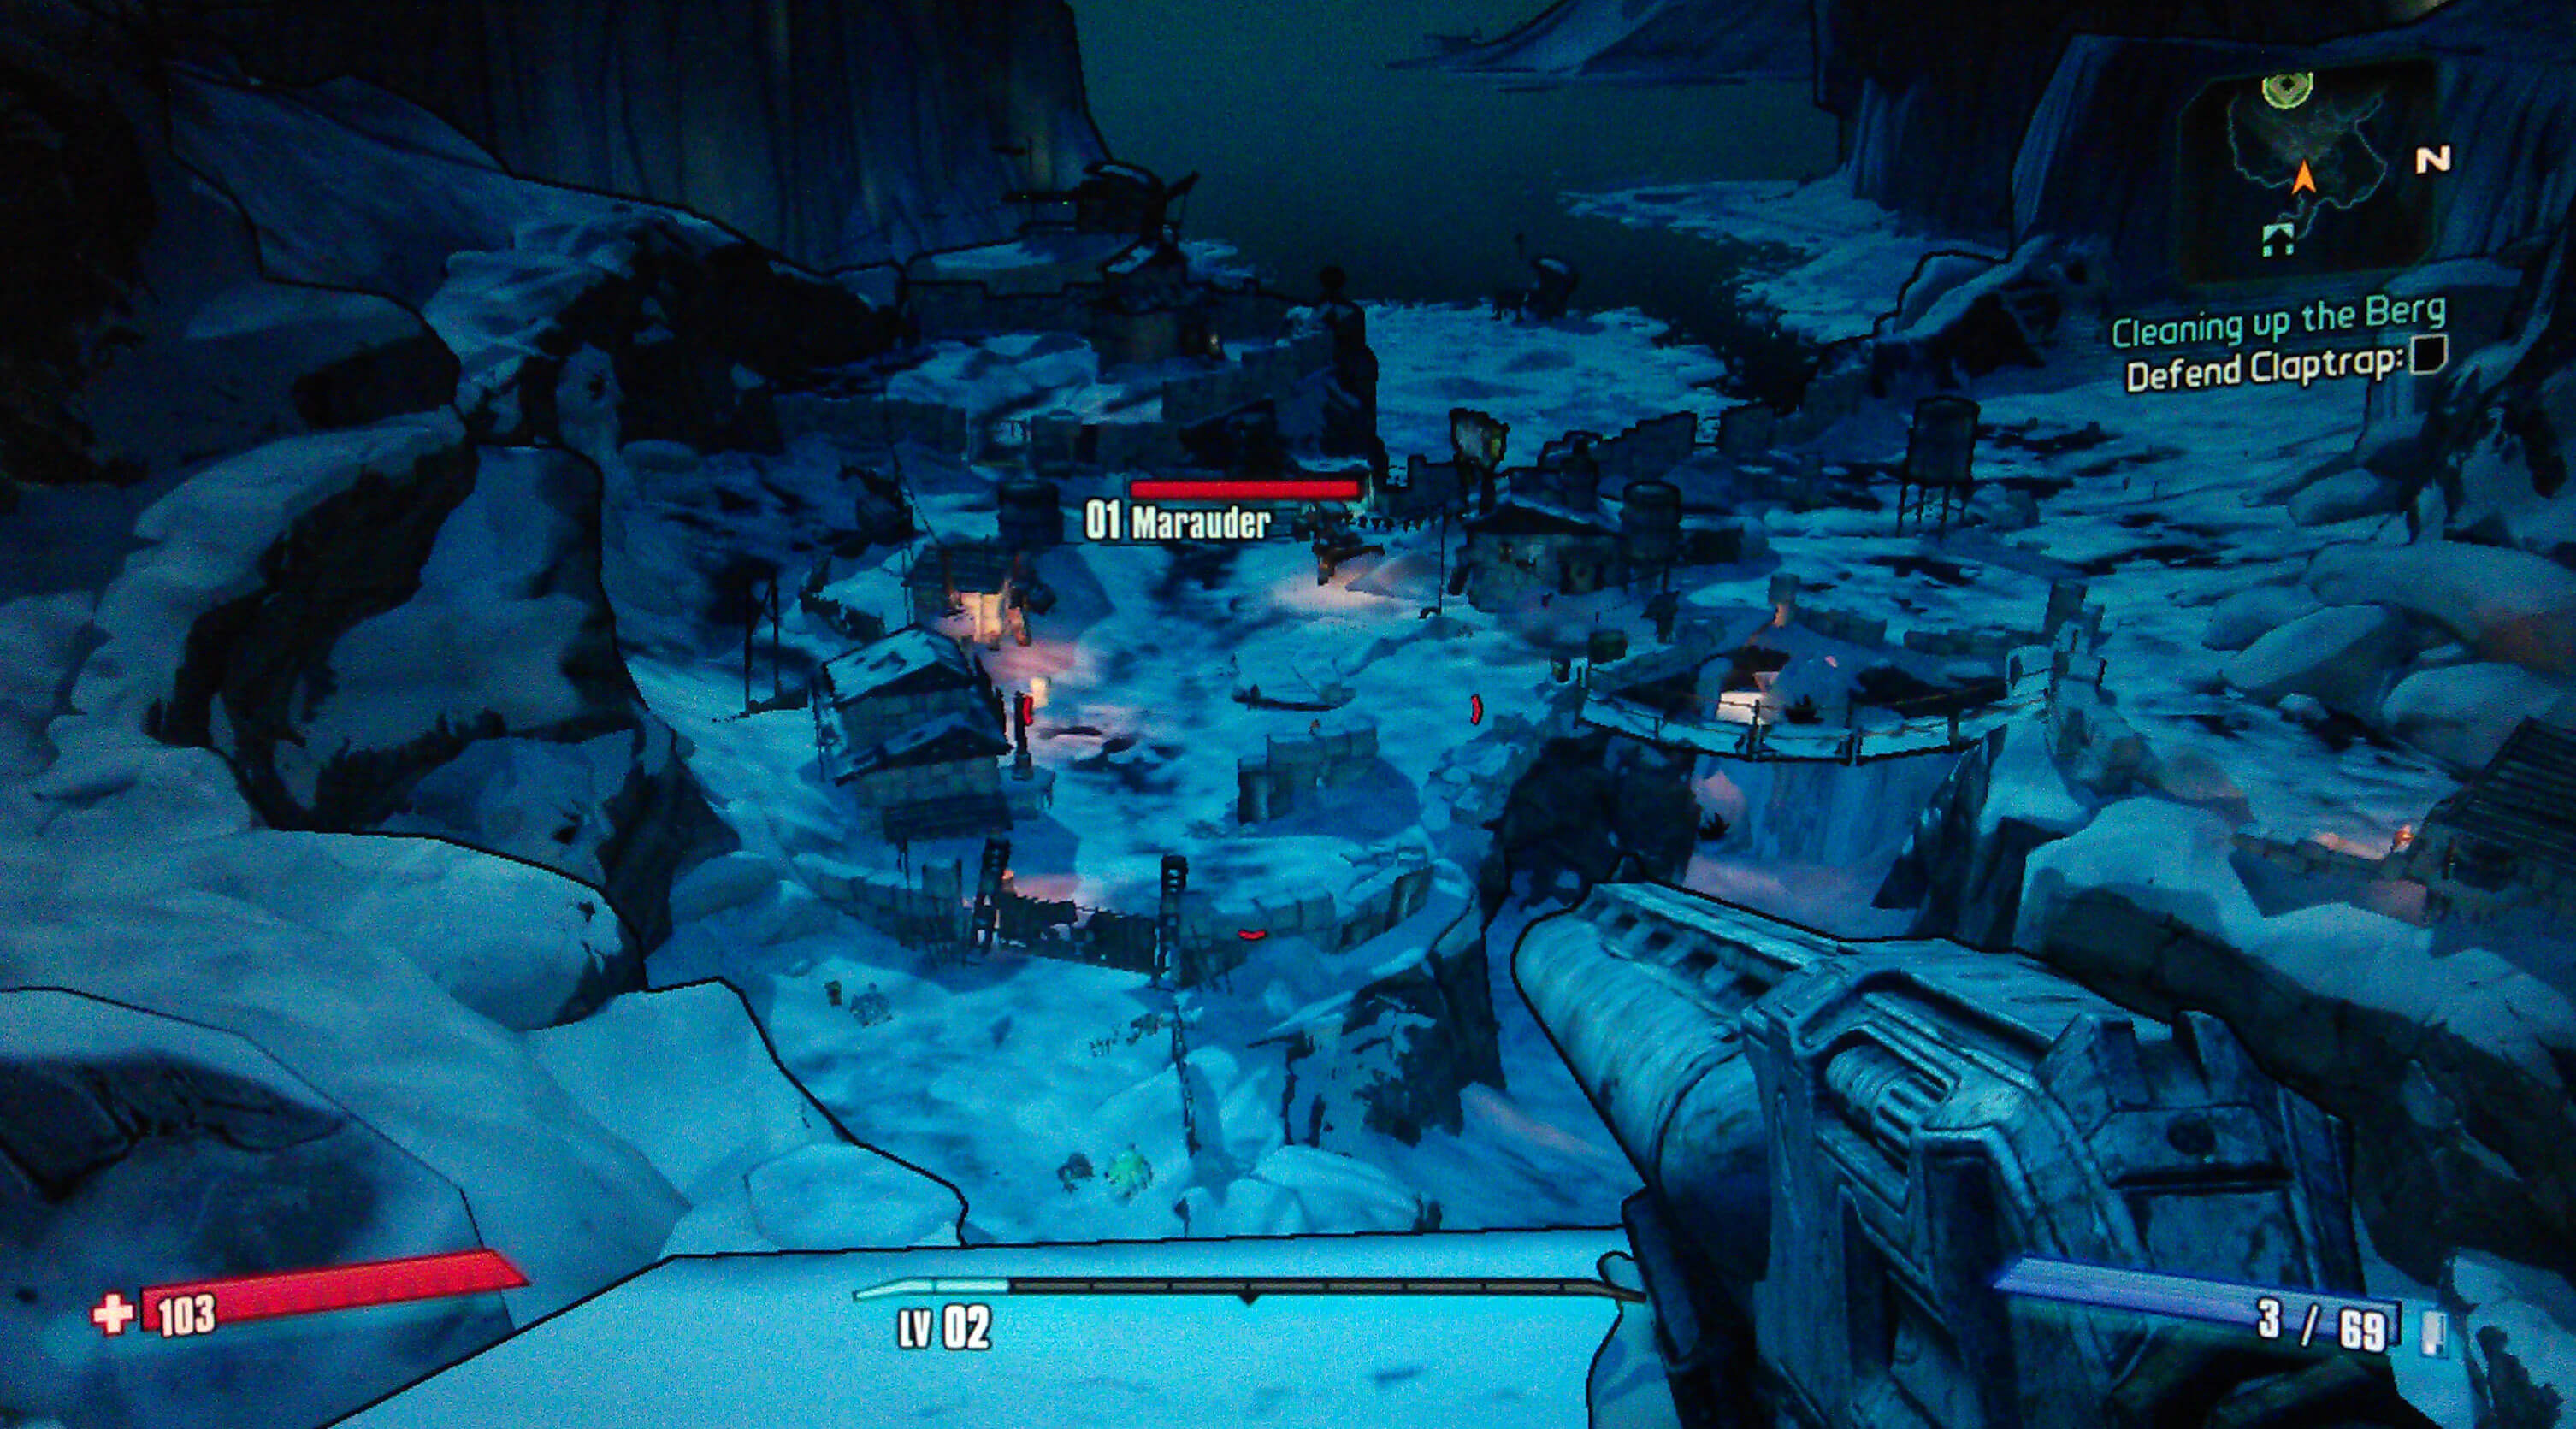 Borderlands 2 Cleaning Up the Berg Walkthrough